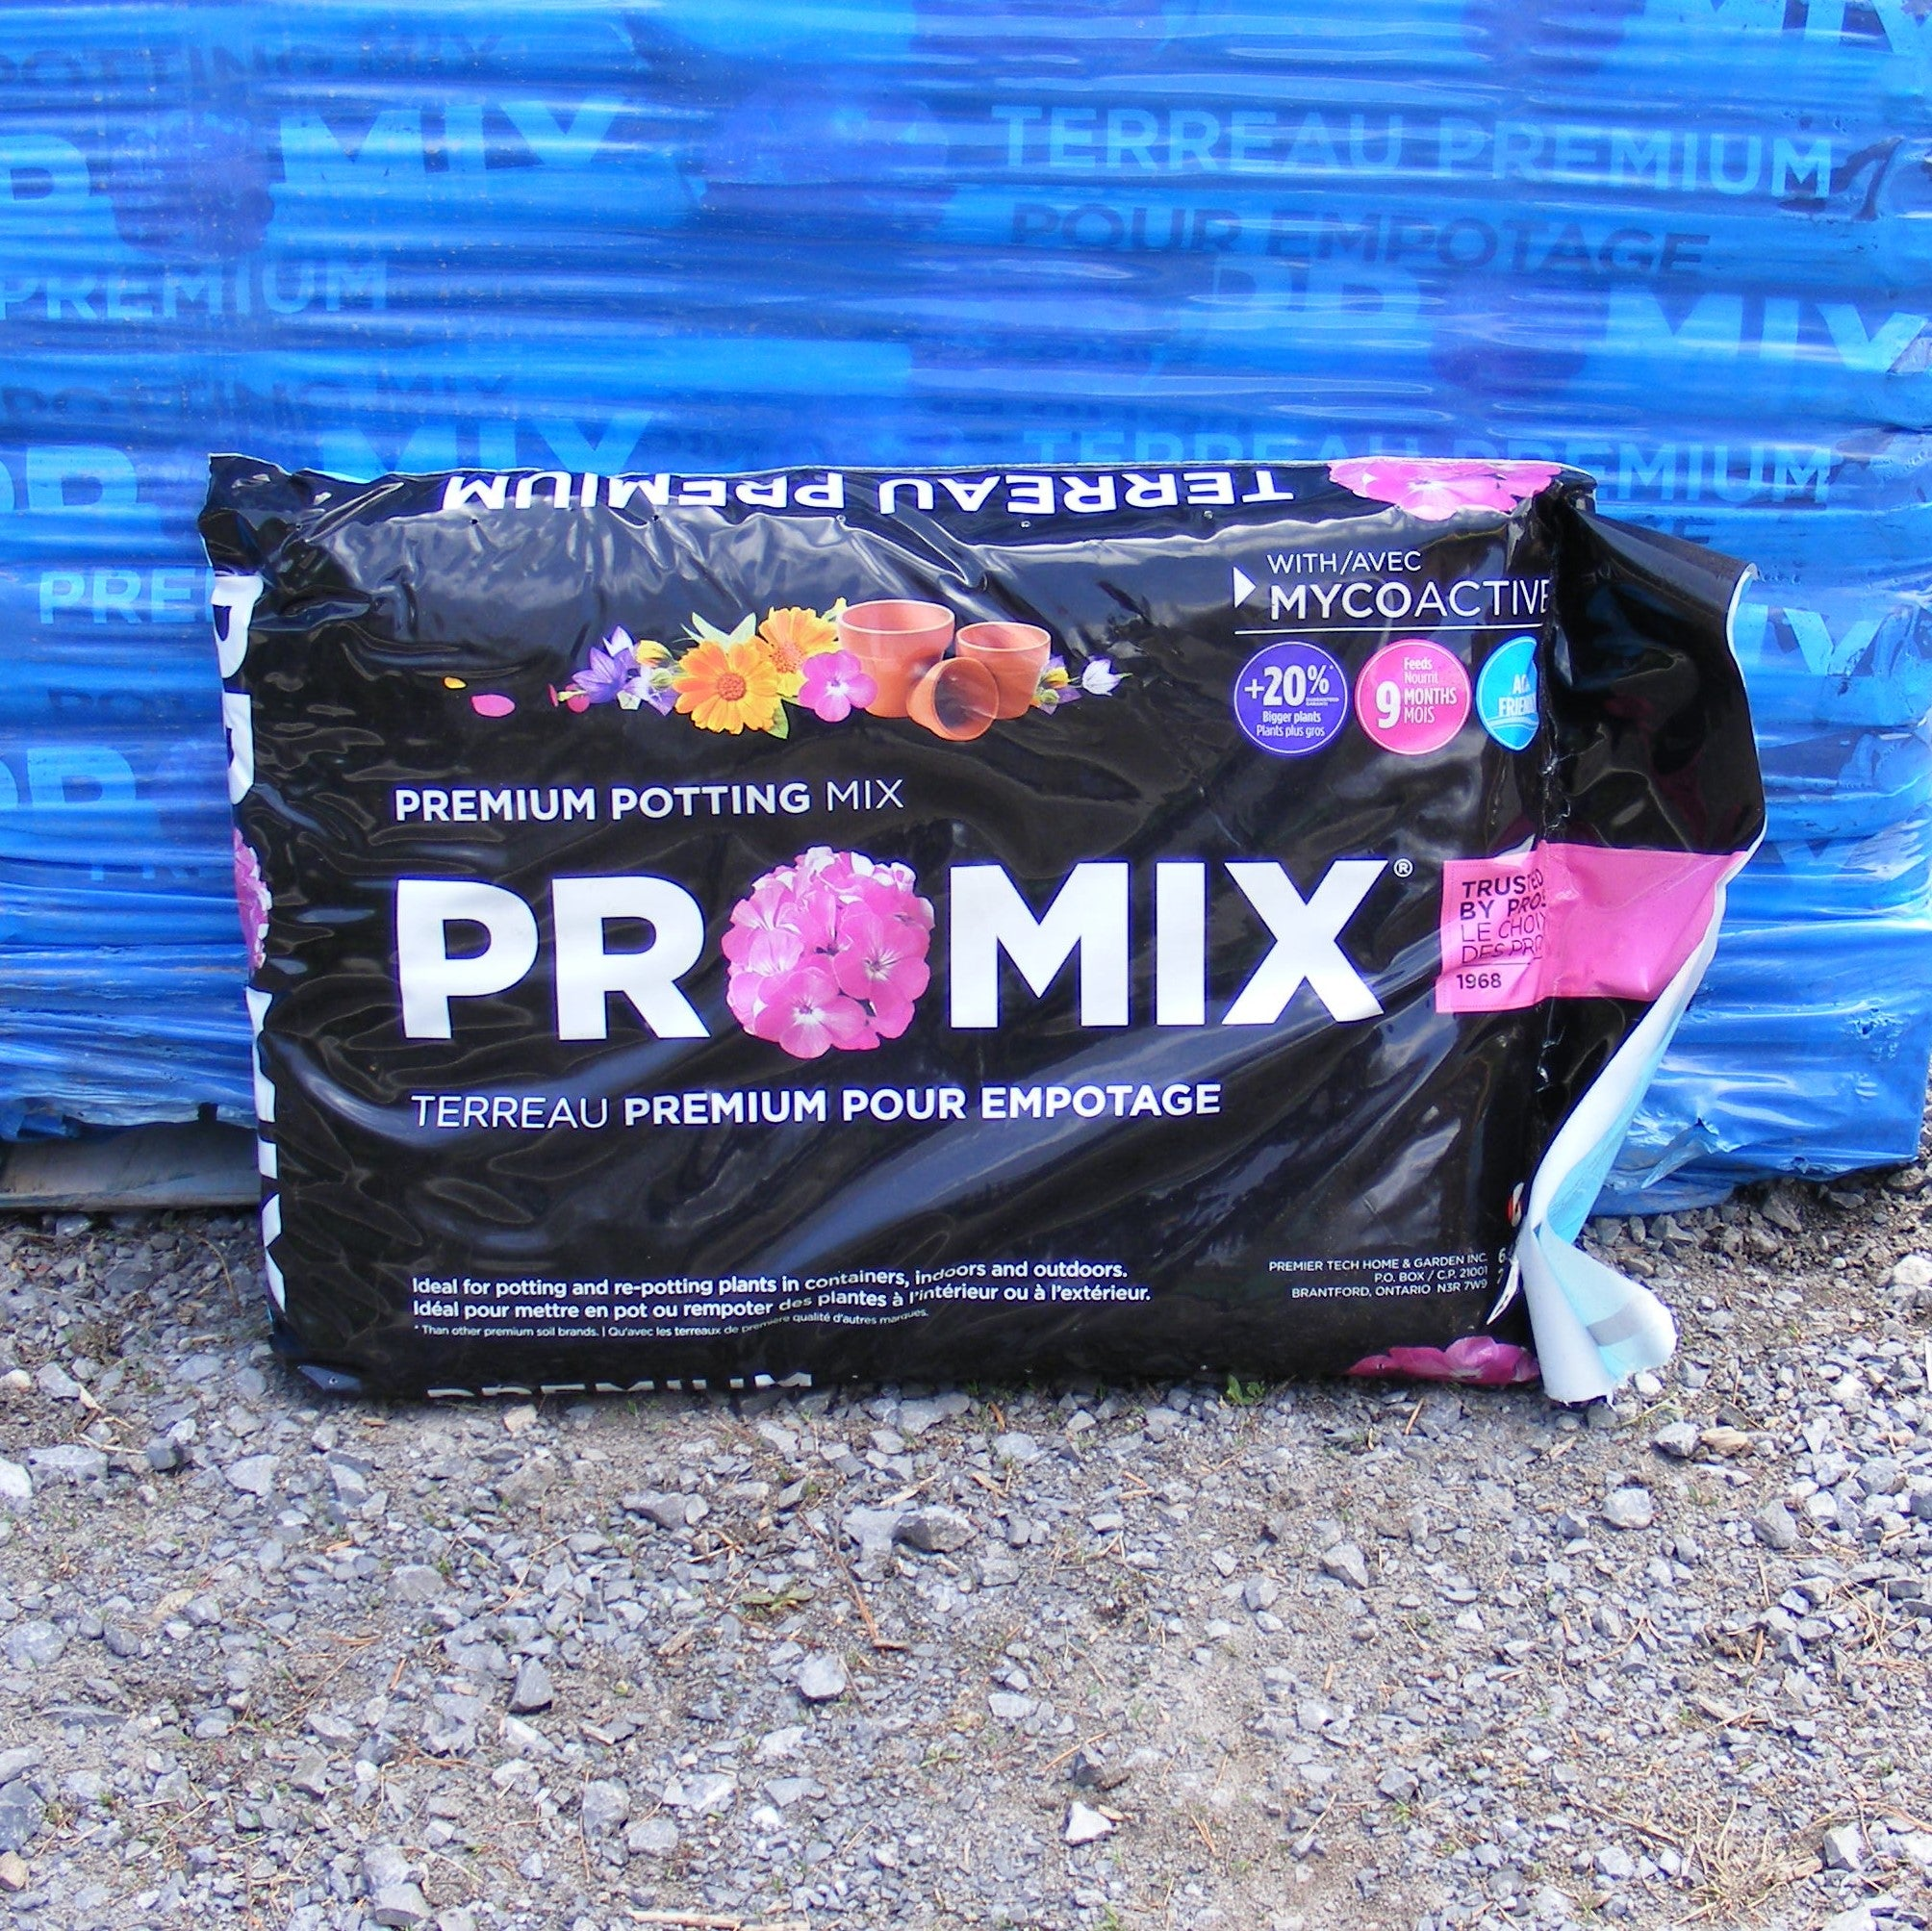 Promix Potting Mix 28.3L